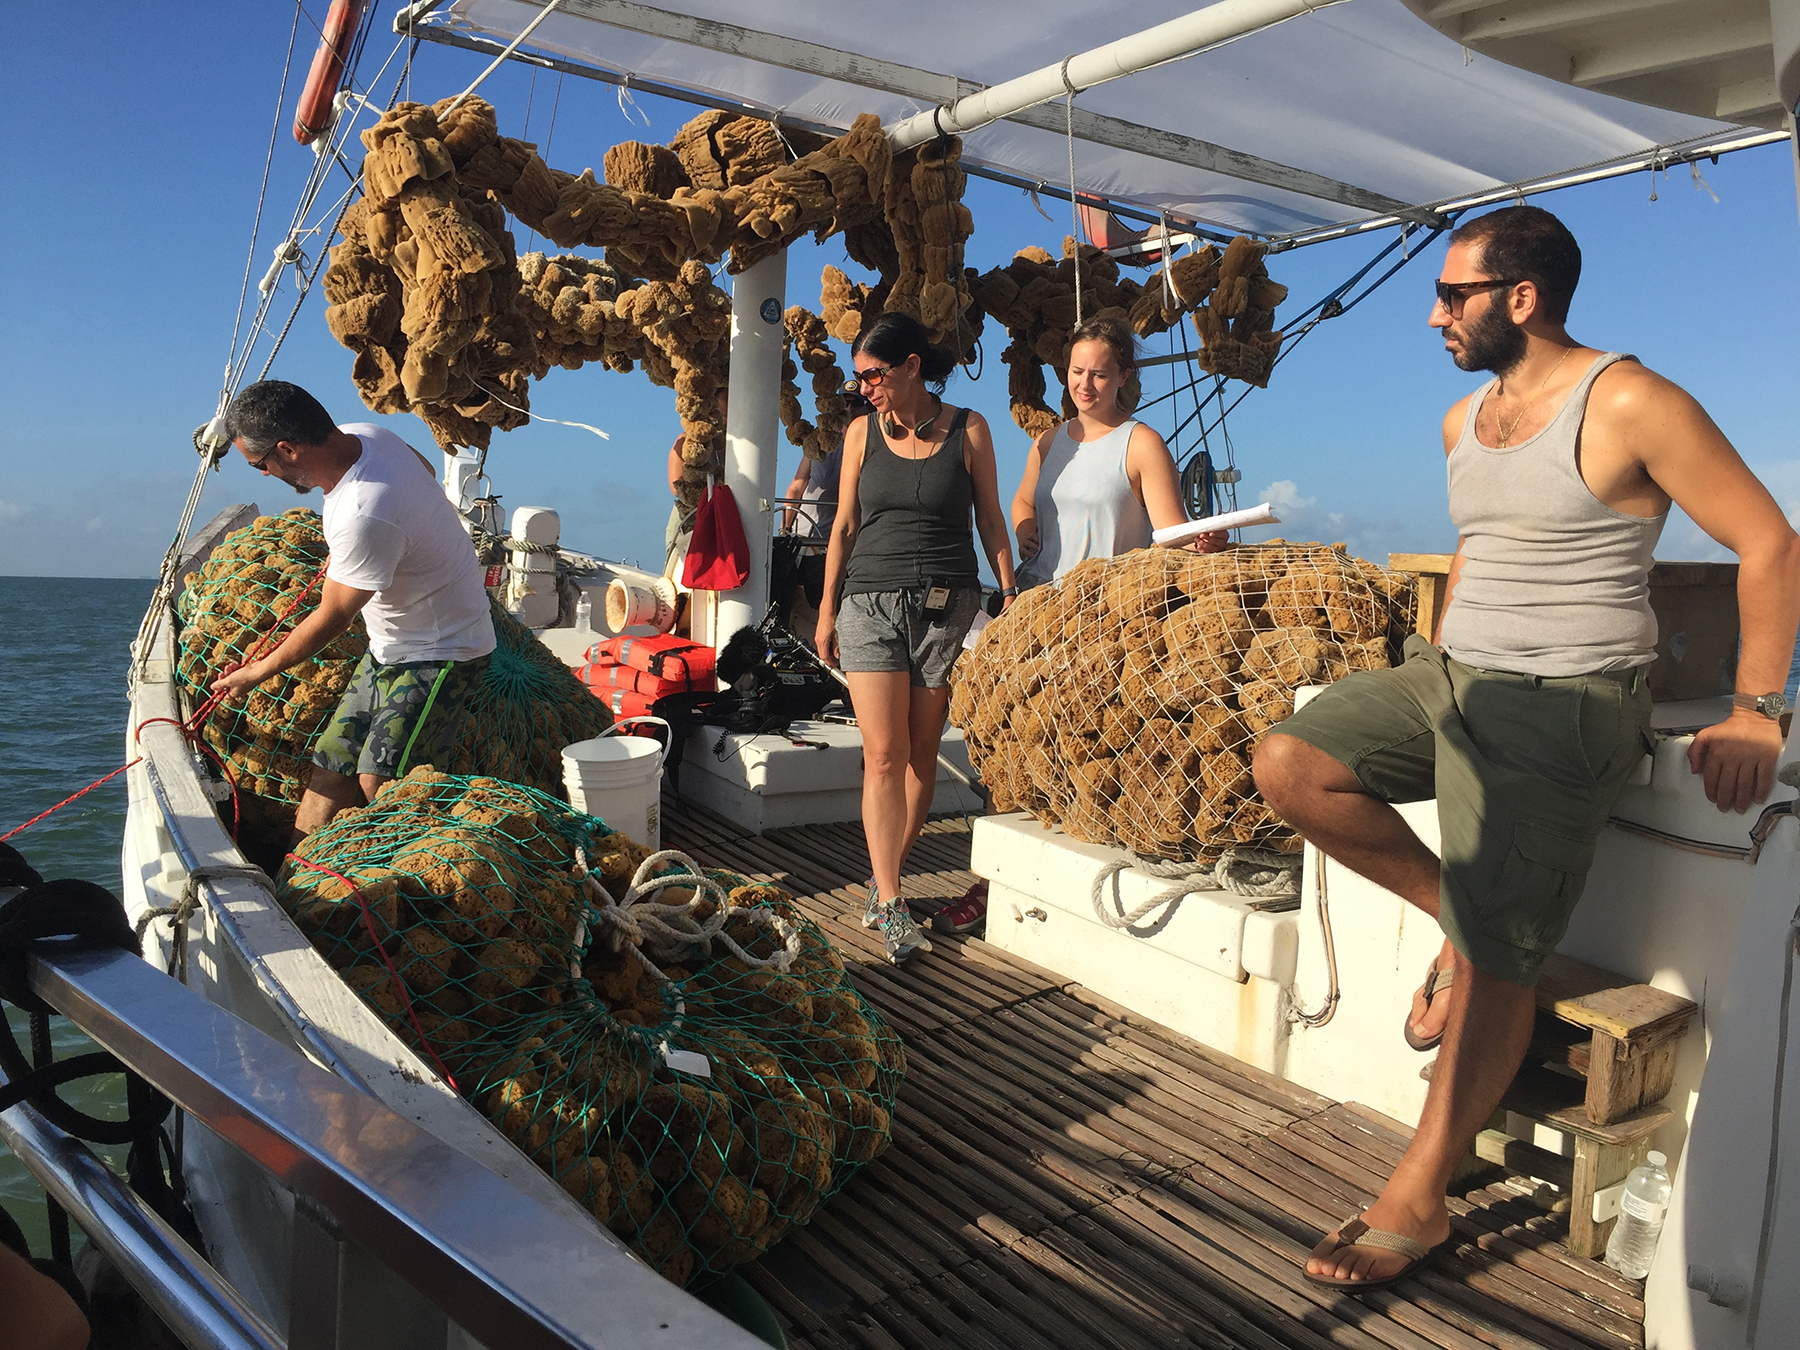 Behind the Scenes on the Sponge Boat